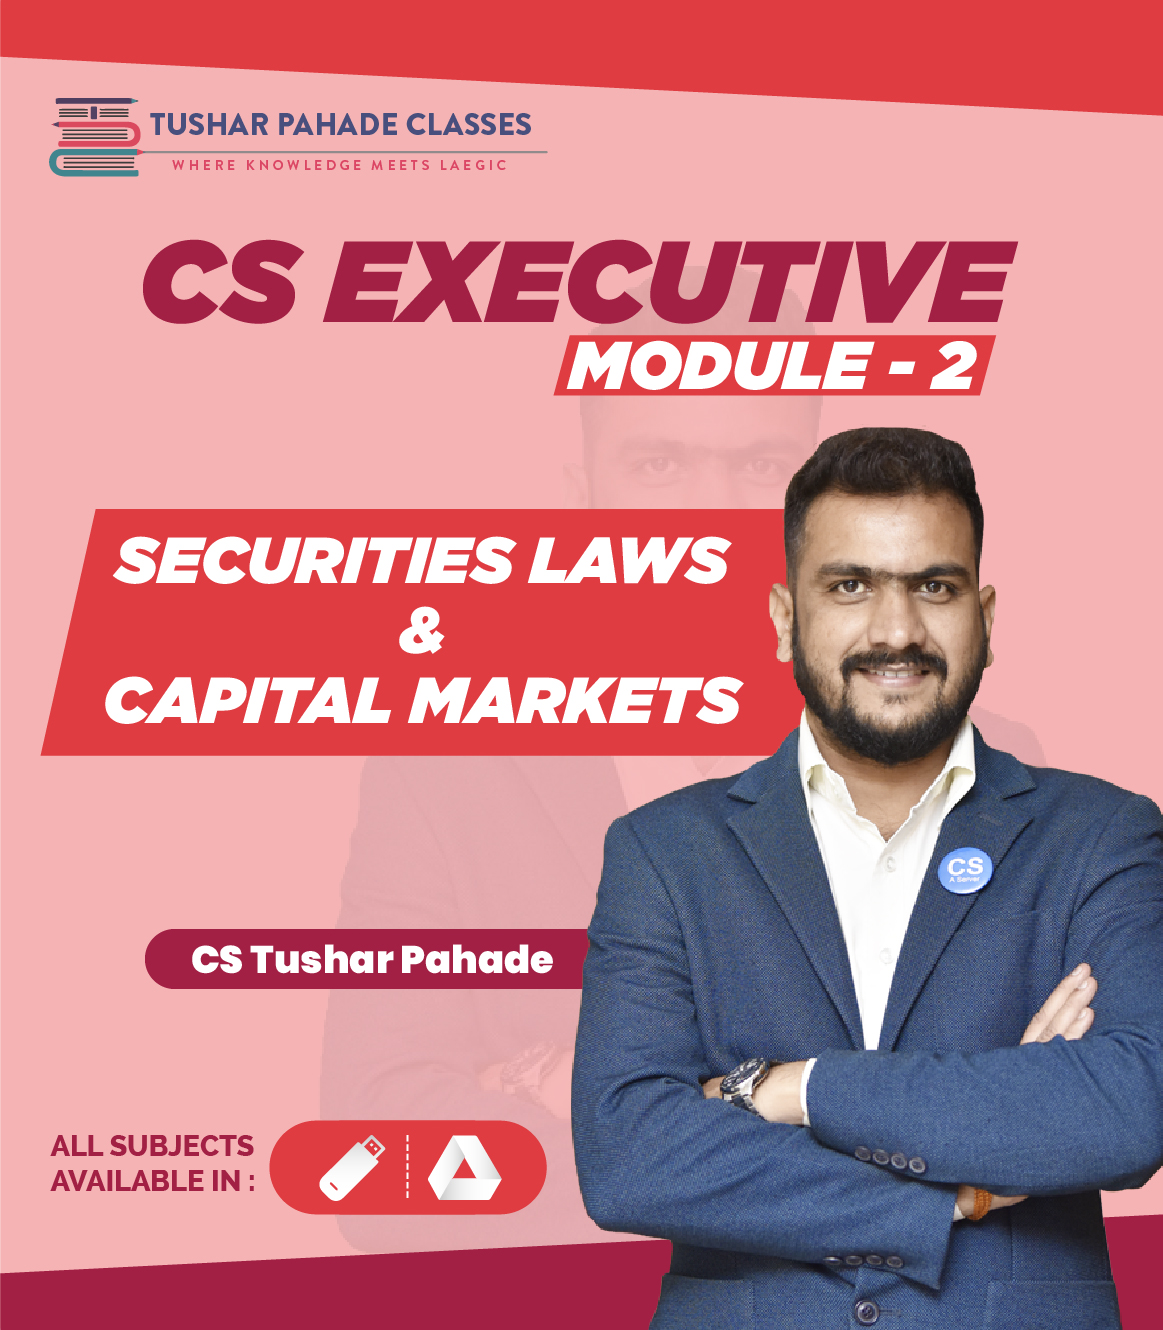 CS Executive Module II pendrive classes by CS tushar Pahade